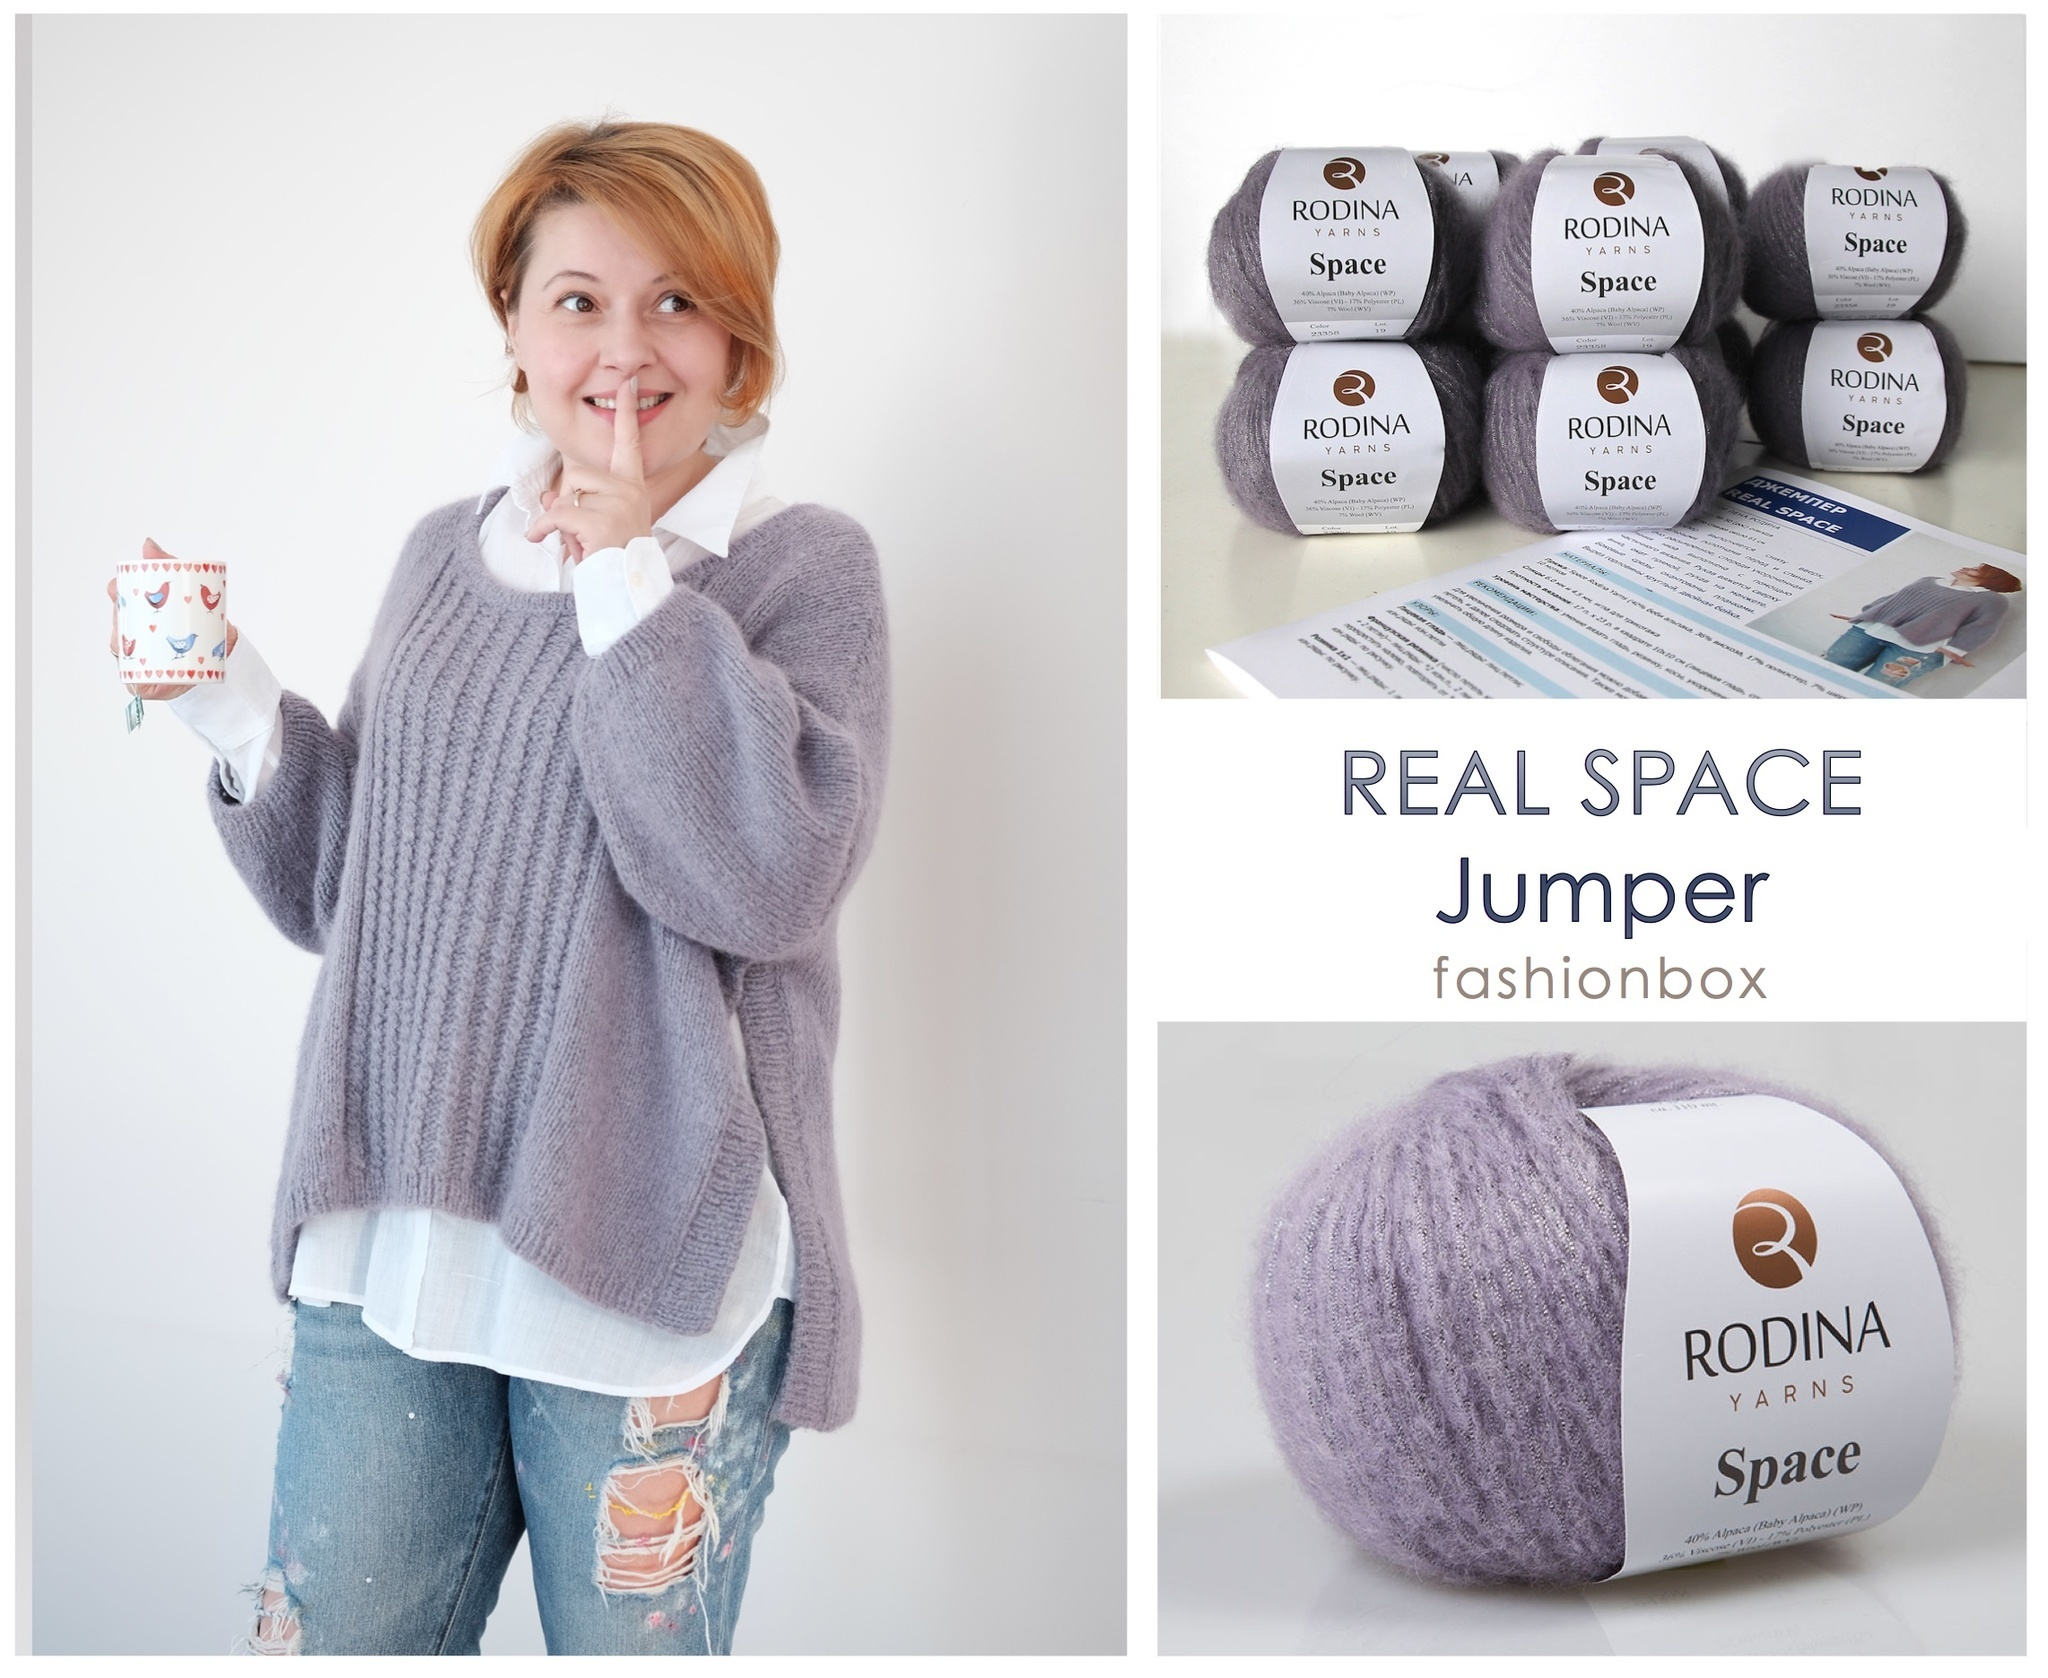 REAL SPACE Jumper Fashionbox by Rodina Yarns